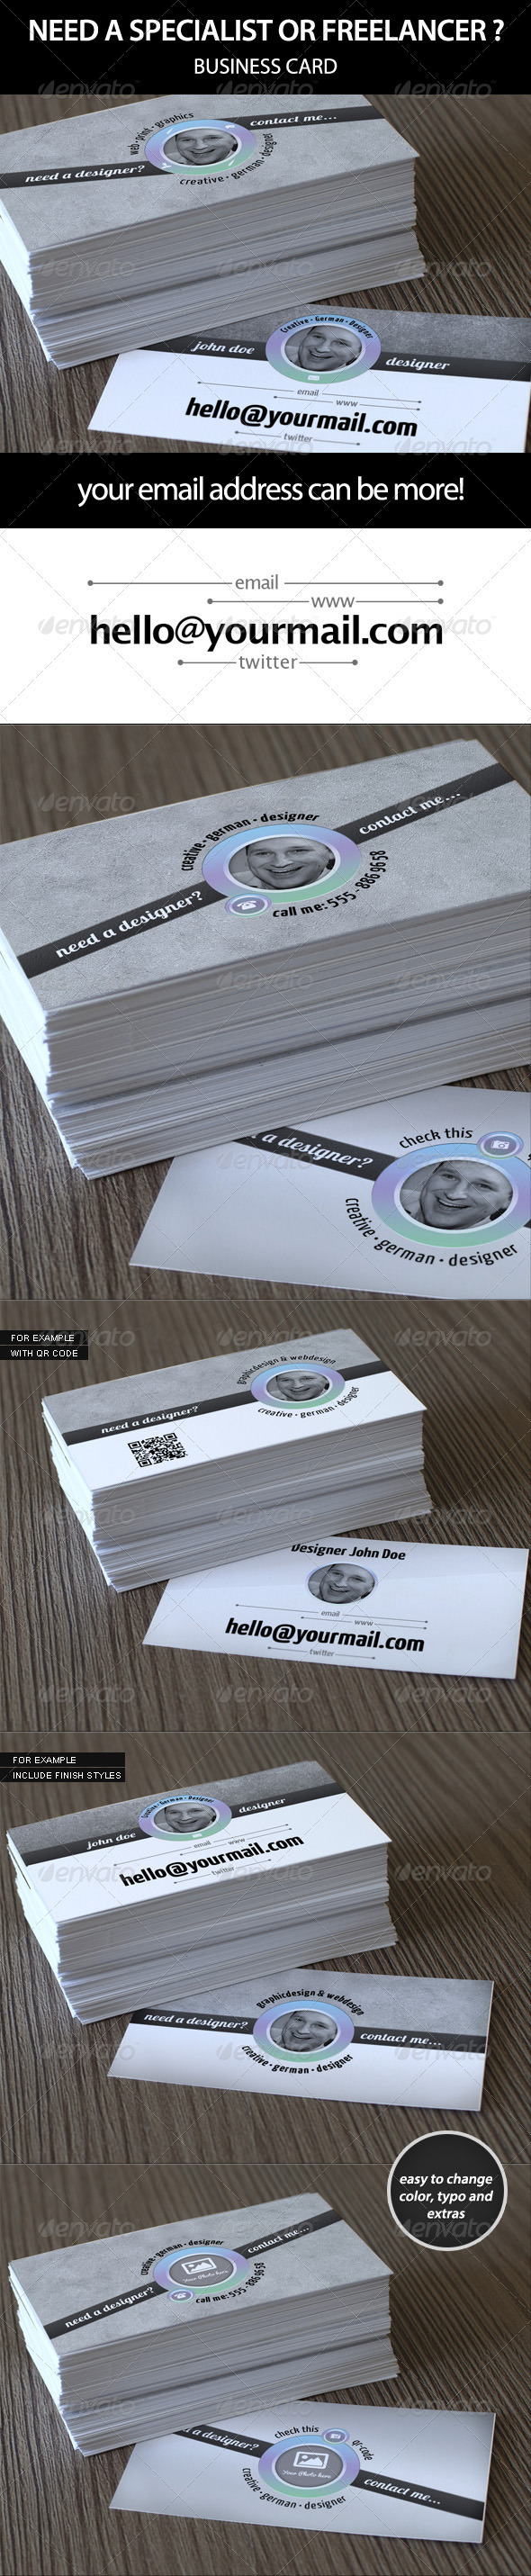 GraphicRiver Business Card Need a Specialist or Freelancer 3284822